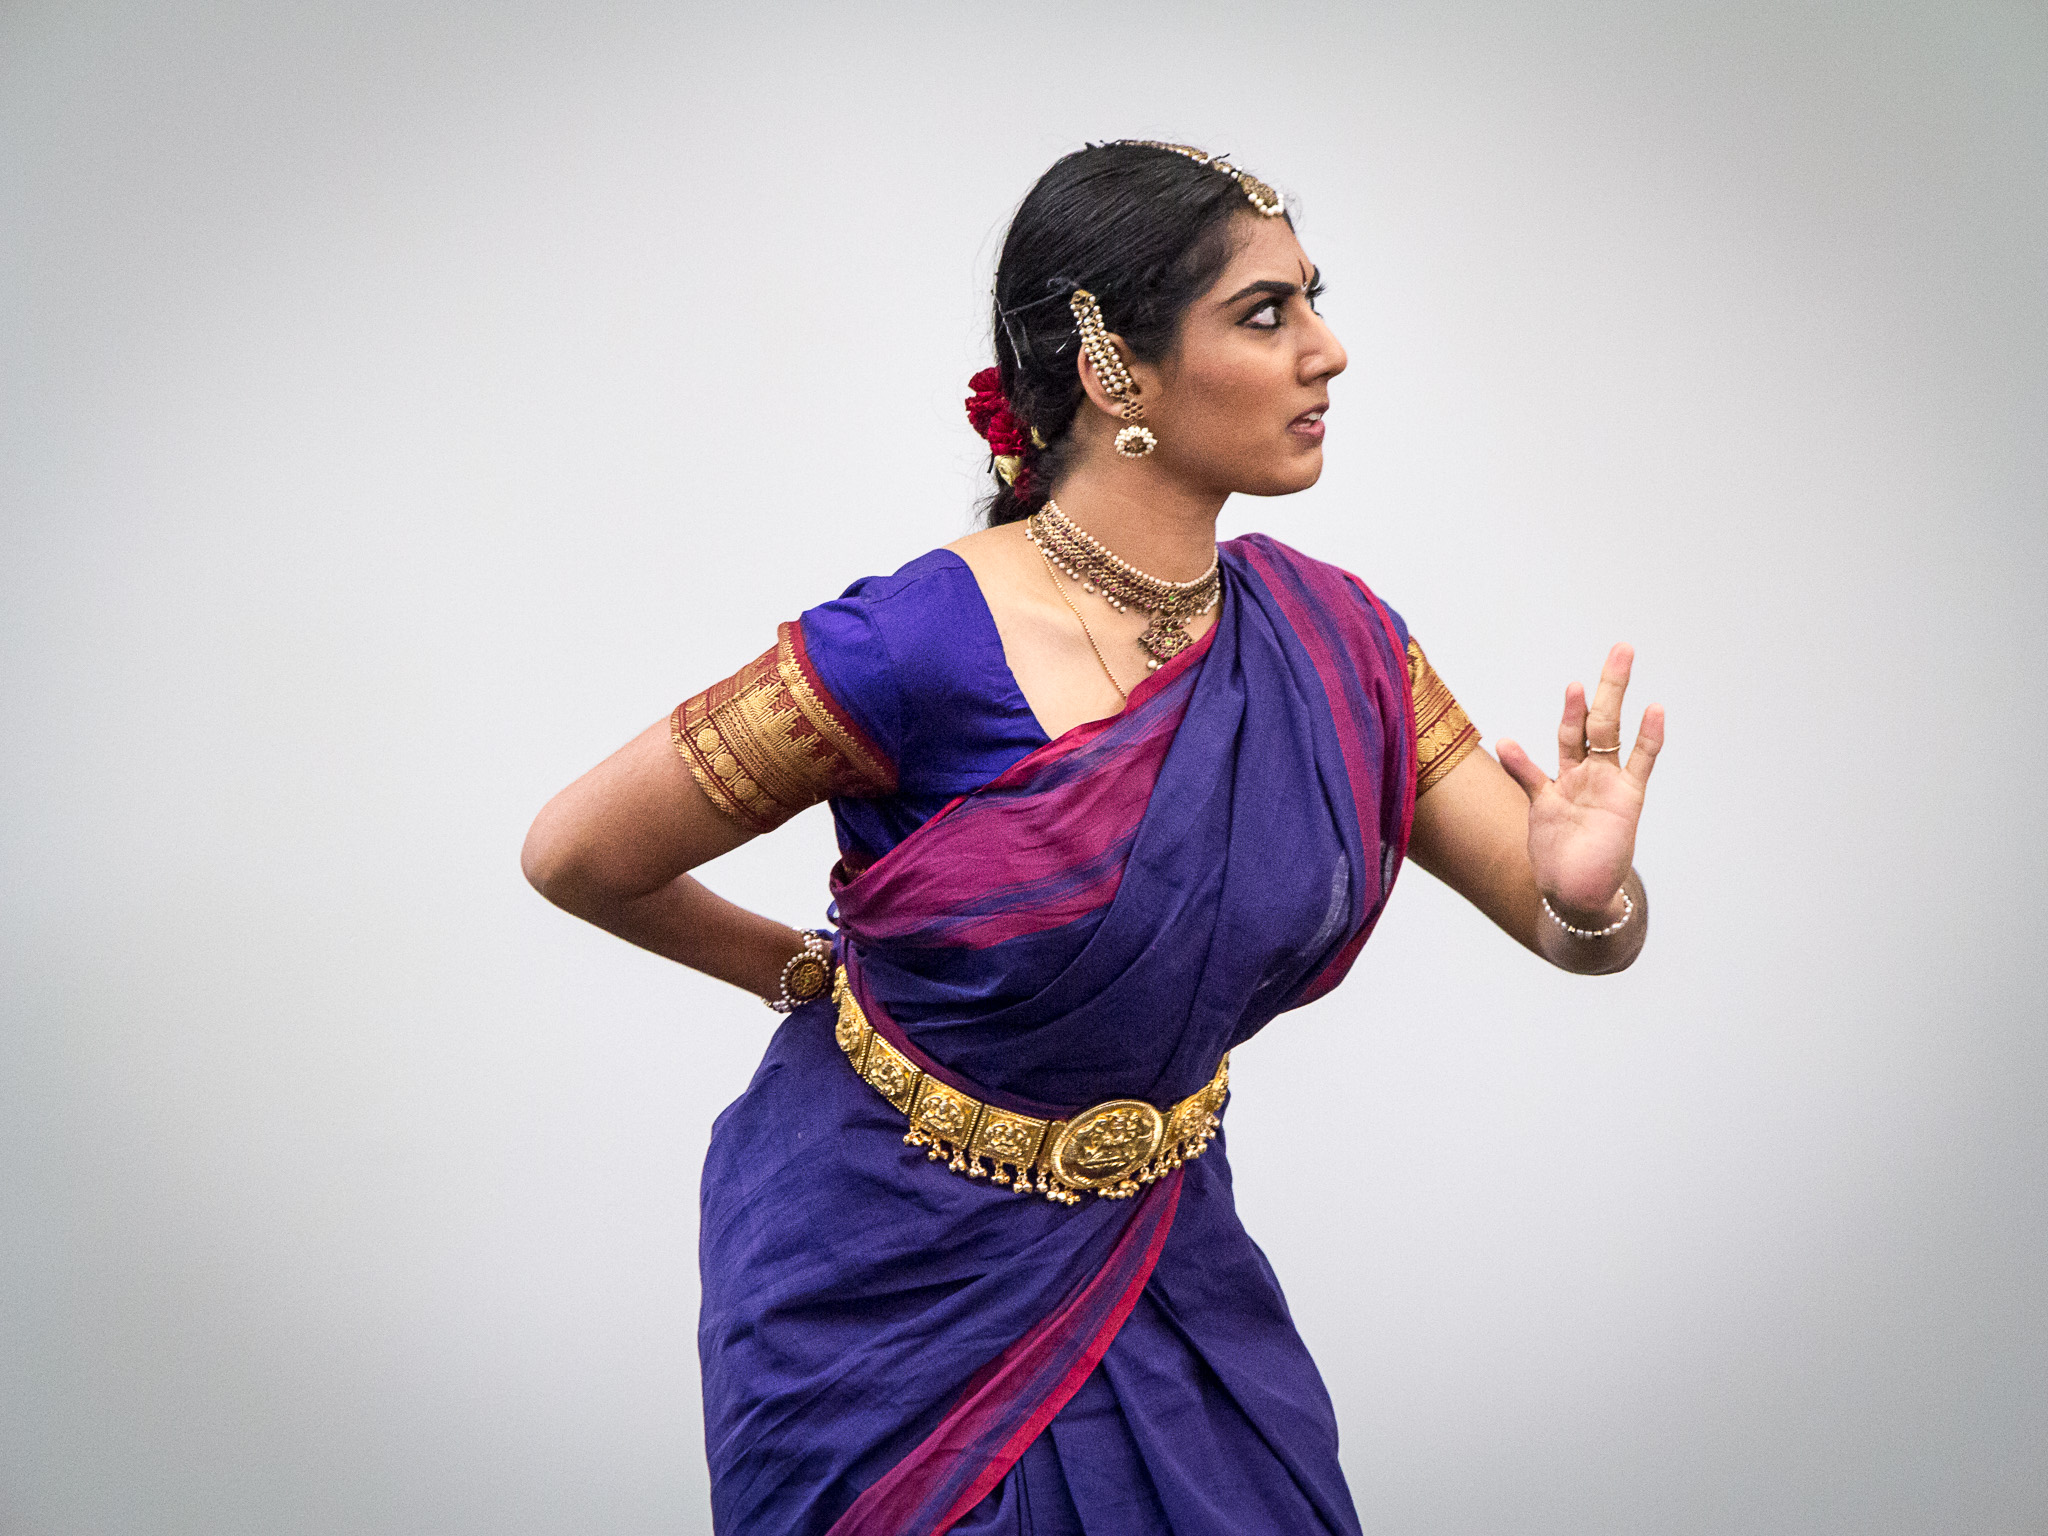 Sutikshna Veeravali's classical dance performance